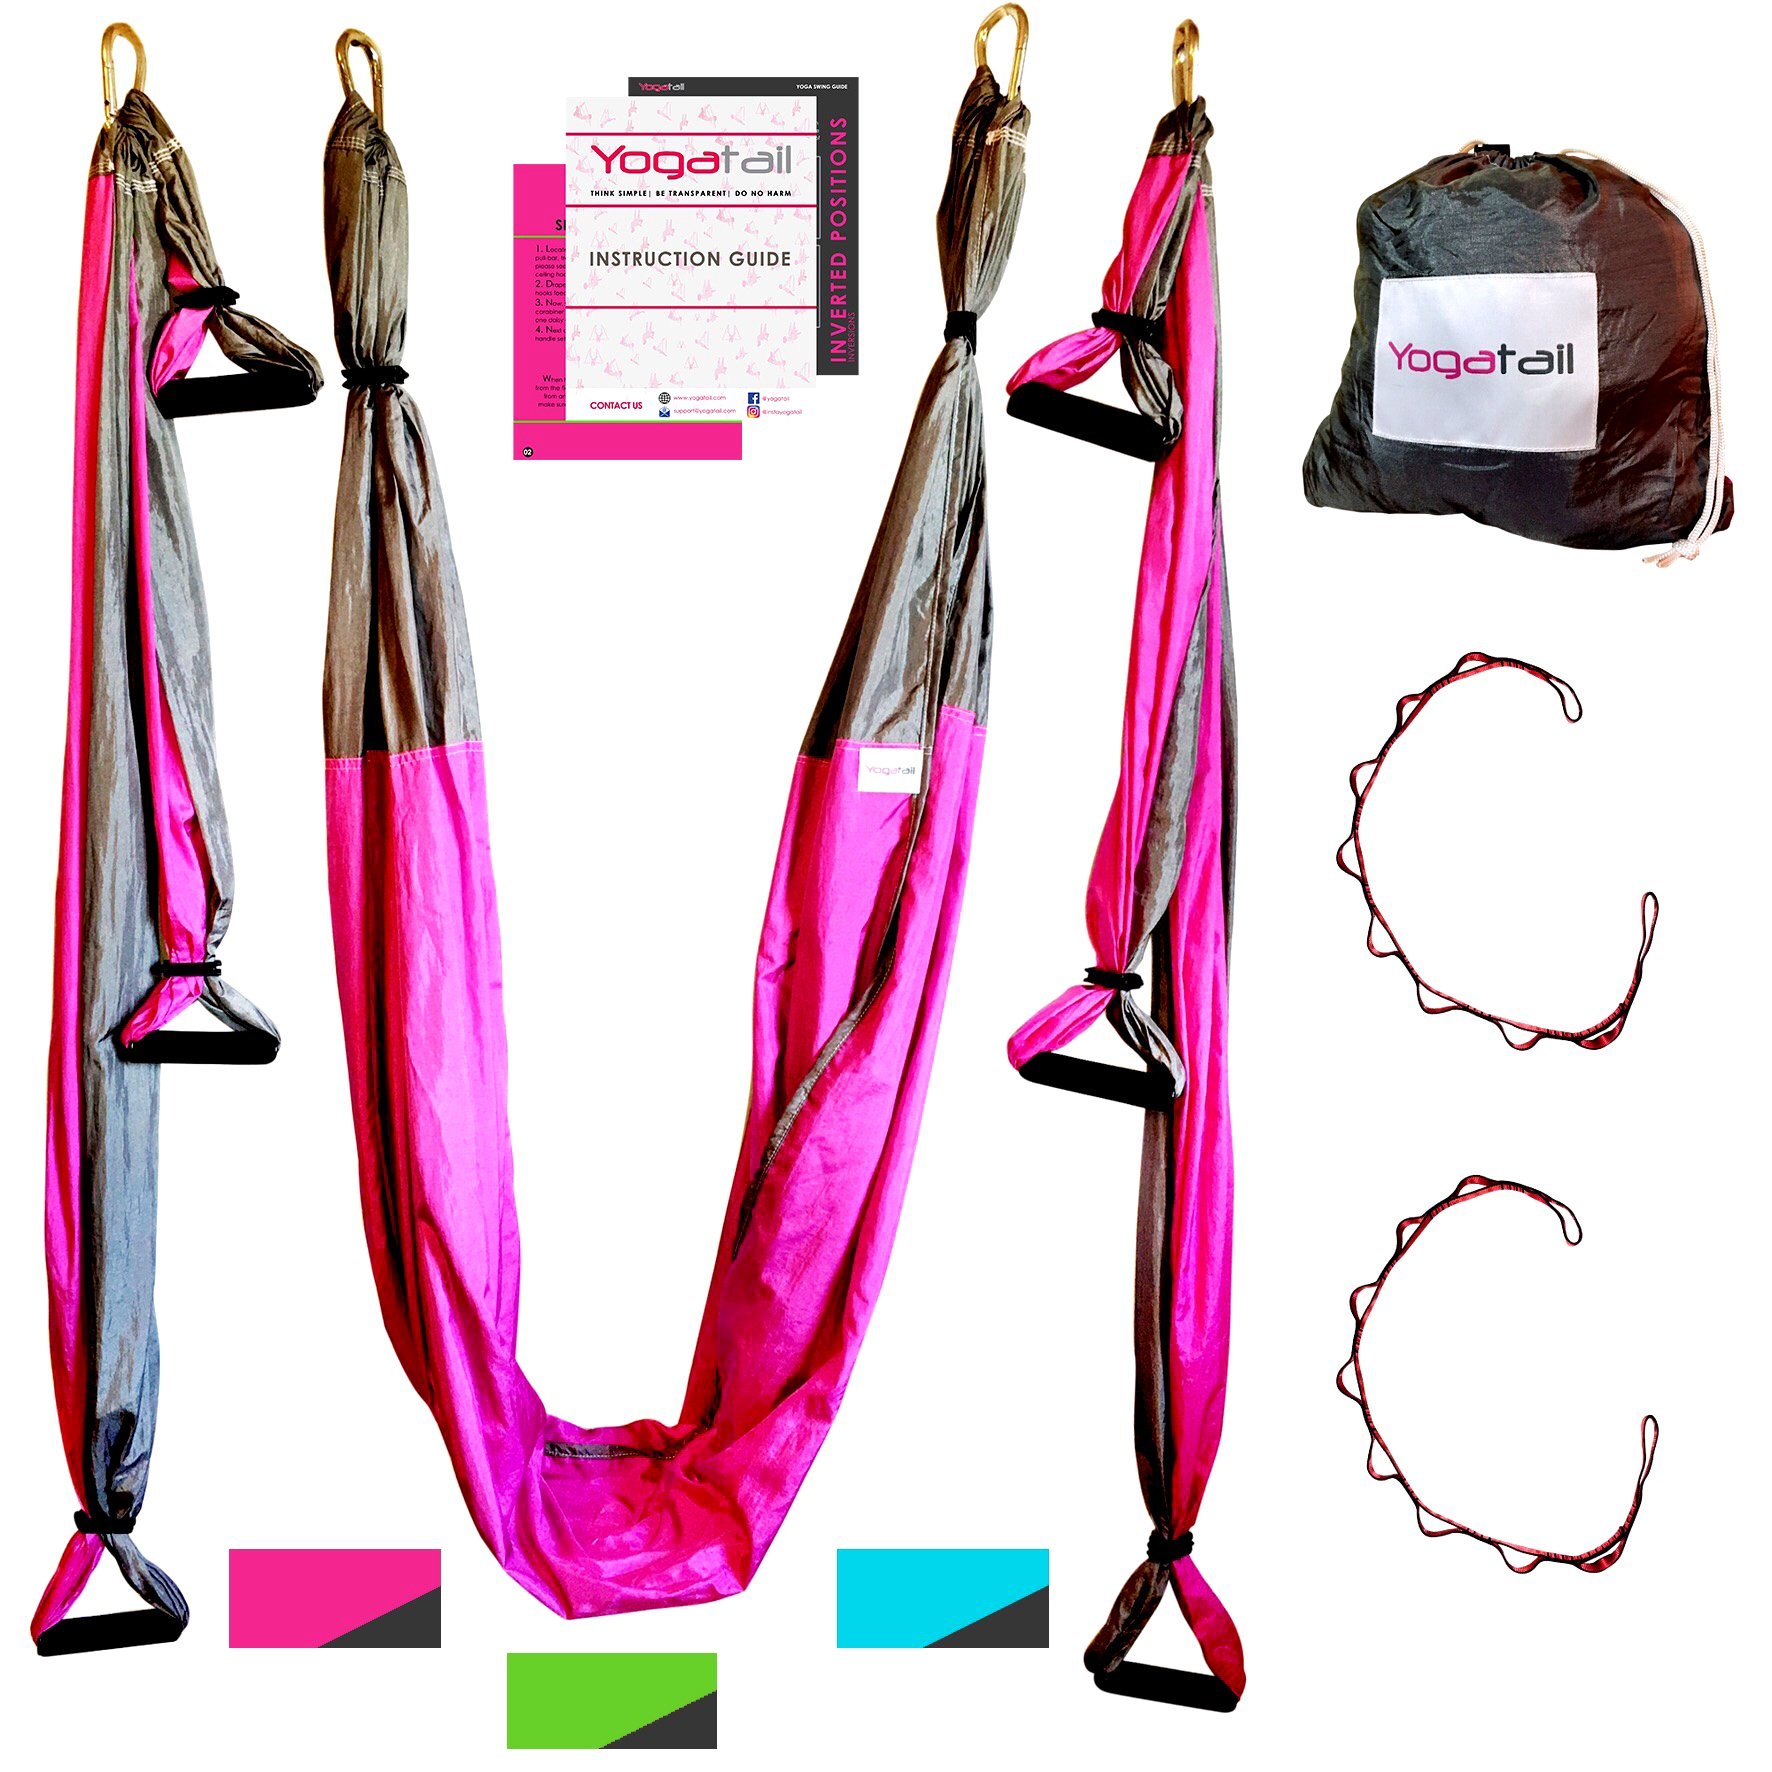 Aerial Yoga Swing - Gym Strength Antigravity Yoga Hammock - Inversion Trapeze Sling Exercise Equipment with Two Extender Hanging Straps - Blue Pink Grey Swings & Beginner Instructions.  by Yogatail (Image #2)